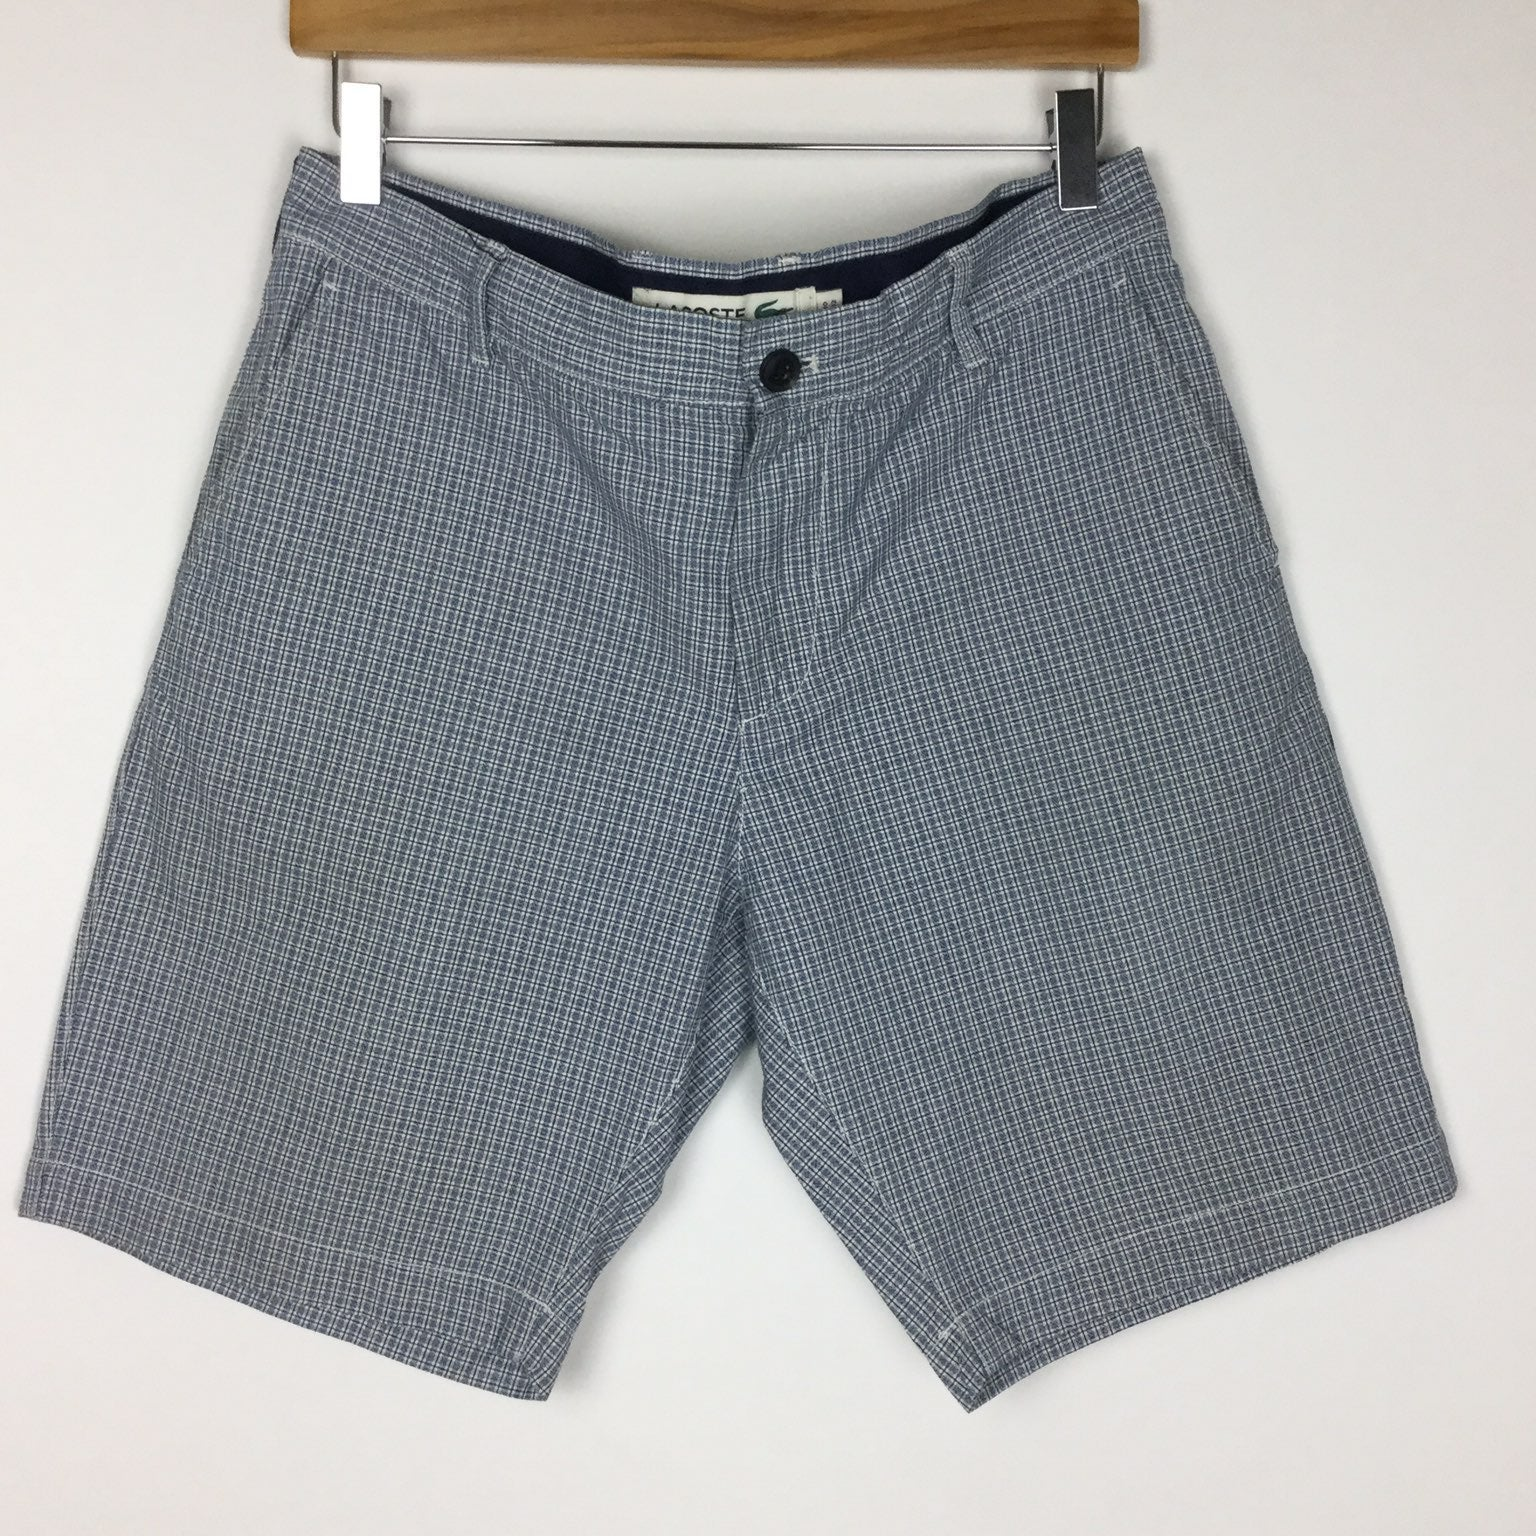 Lacoste Flat Front Shorts Size 32